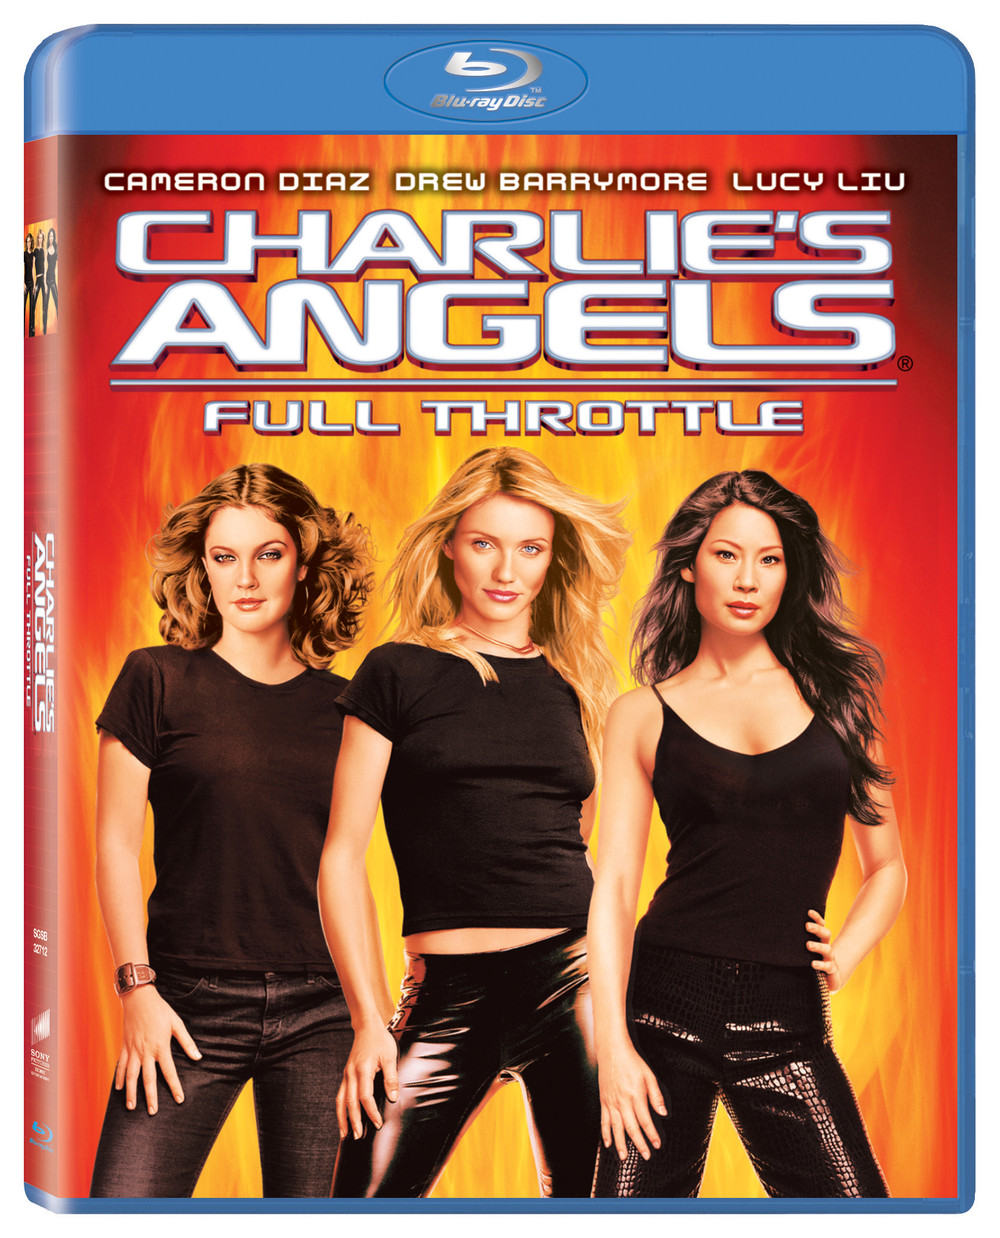 x men 2 2003 tamil dubbed movie hd 720p watch online charlie s angels 2 full throttle 2003 tamil dubbed movie hd 720p watch online